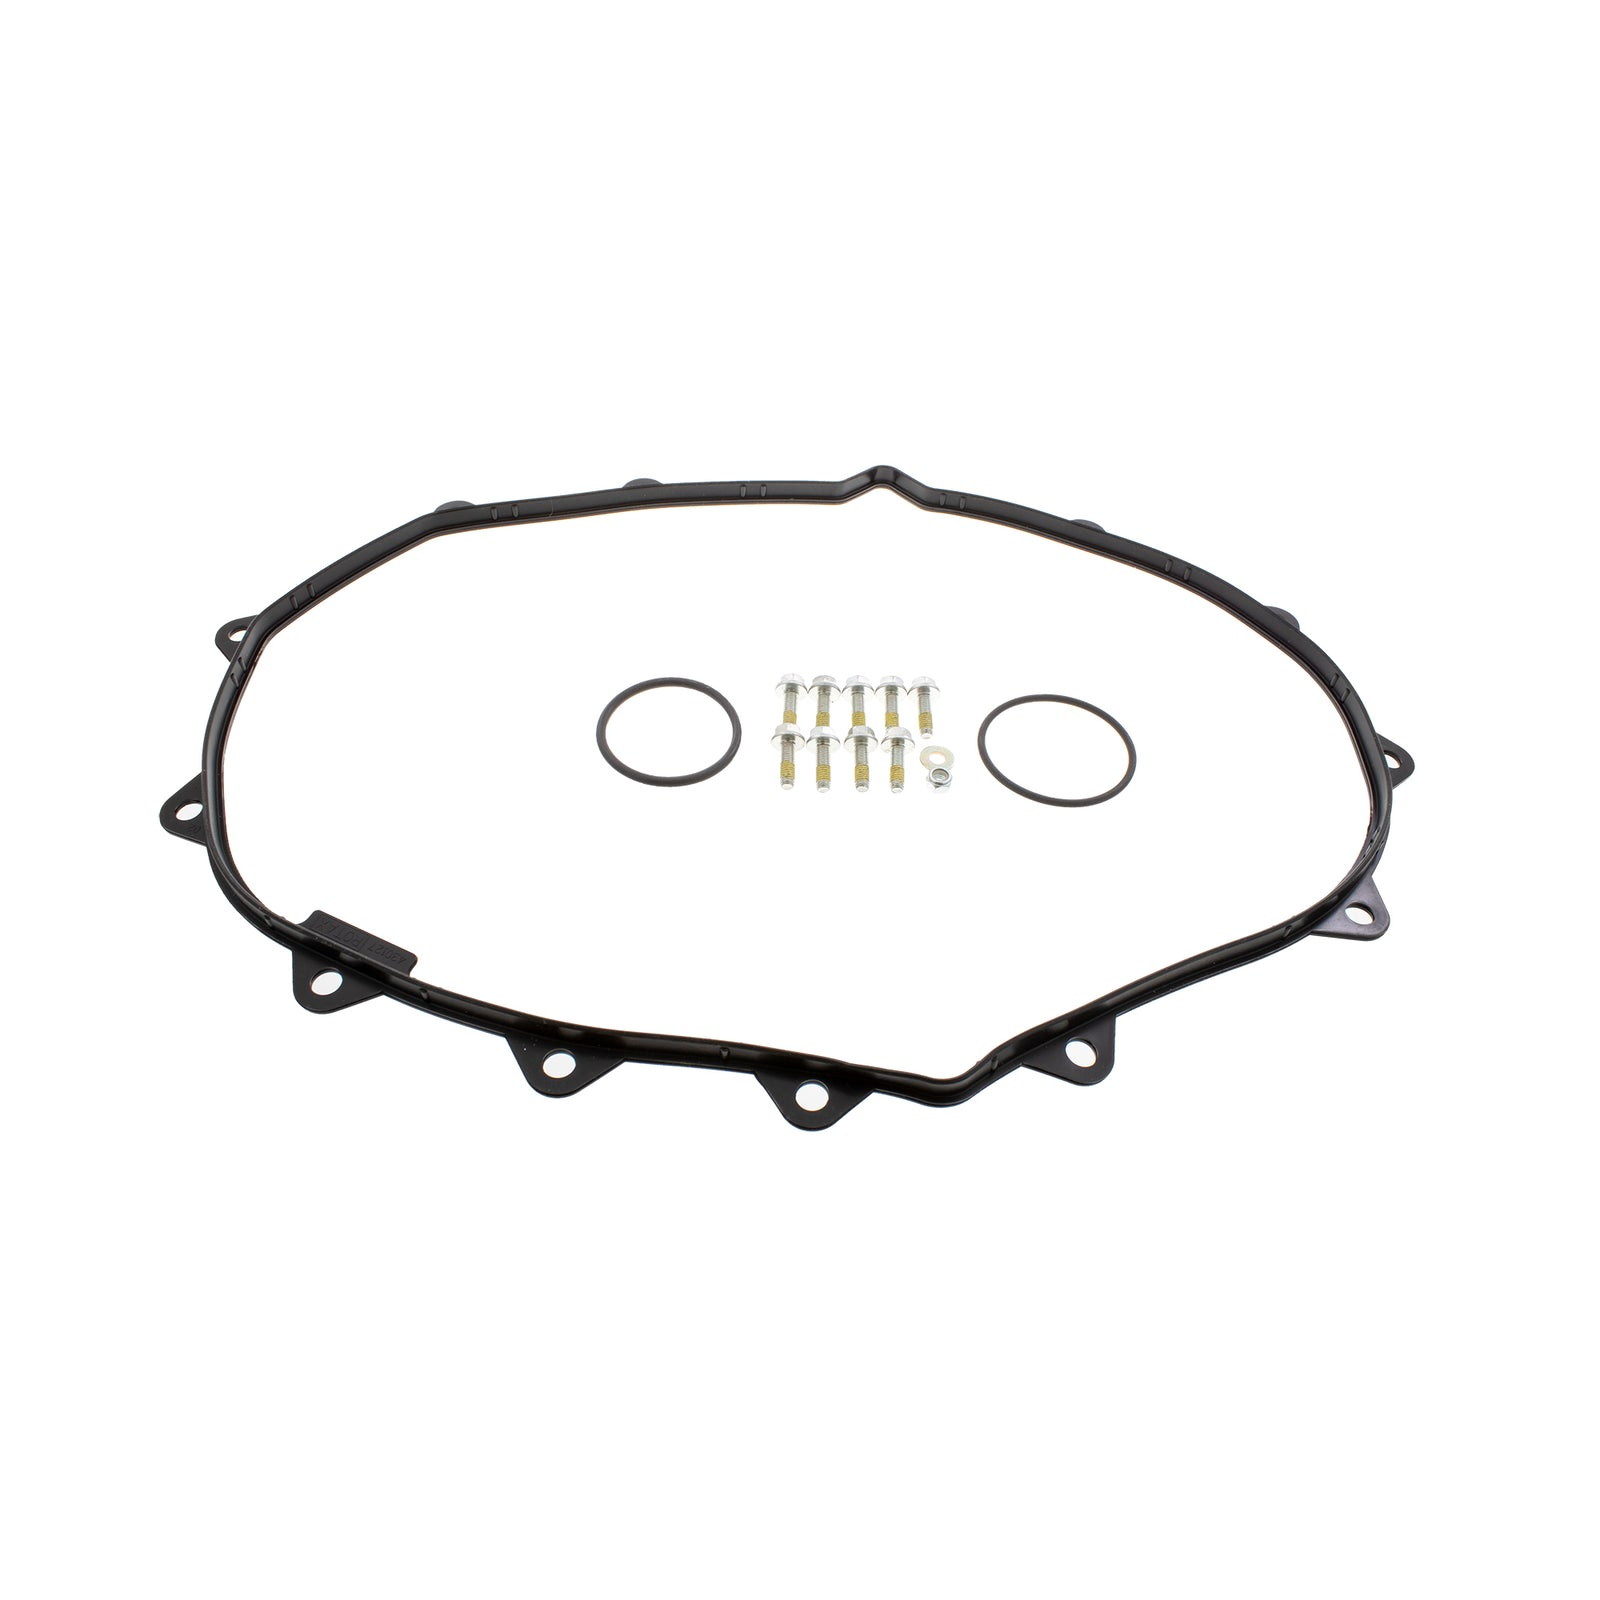 BRP 420611407 CVT Air Guide Kit Inner Clutch Cover Can-Am